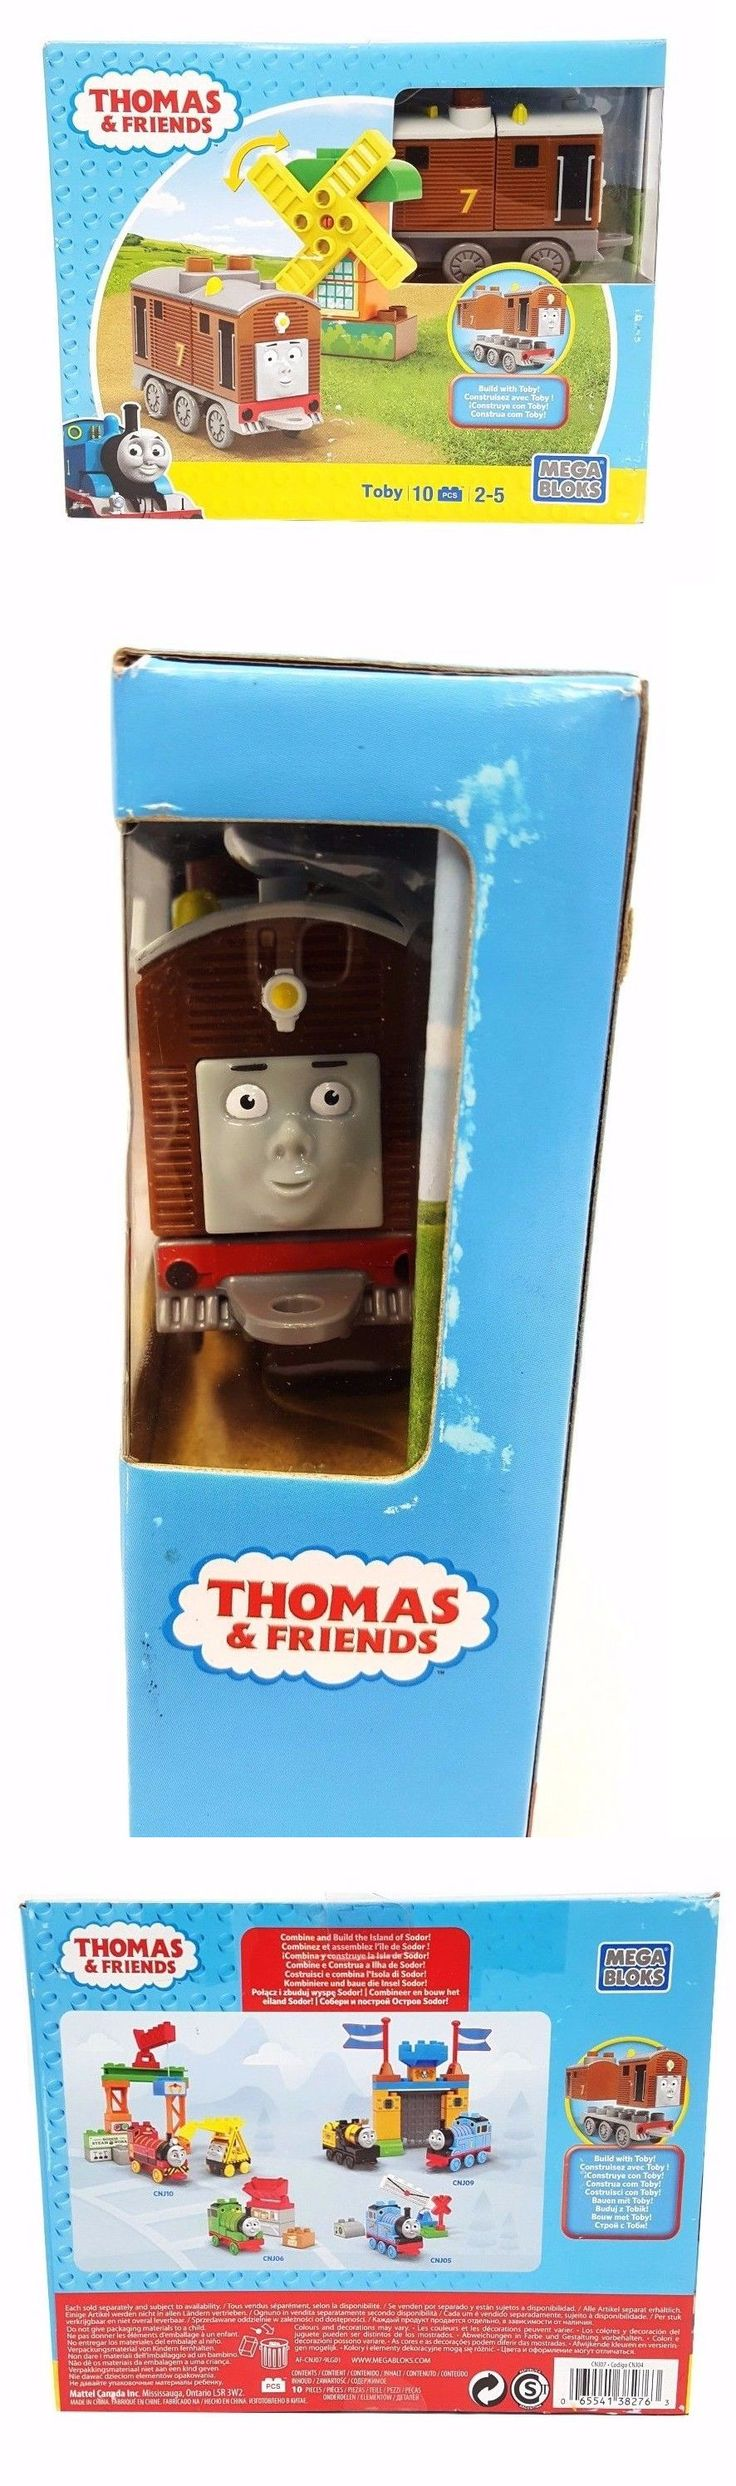 Other Thomas Toys 2629: Mega Bloks Toby Thomas And Friends Buildable Engine -> BUY IT NOW ONLY: $30 on eBay!